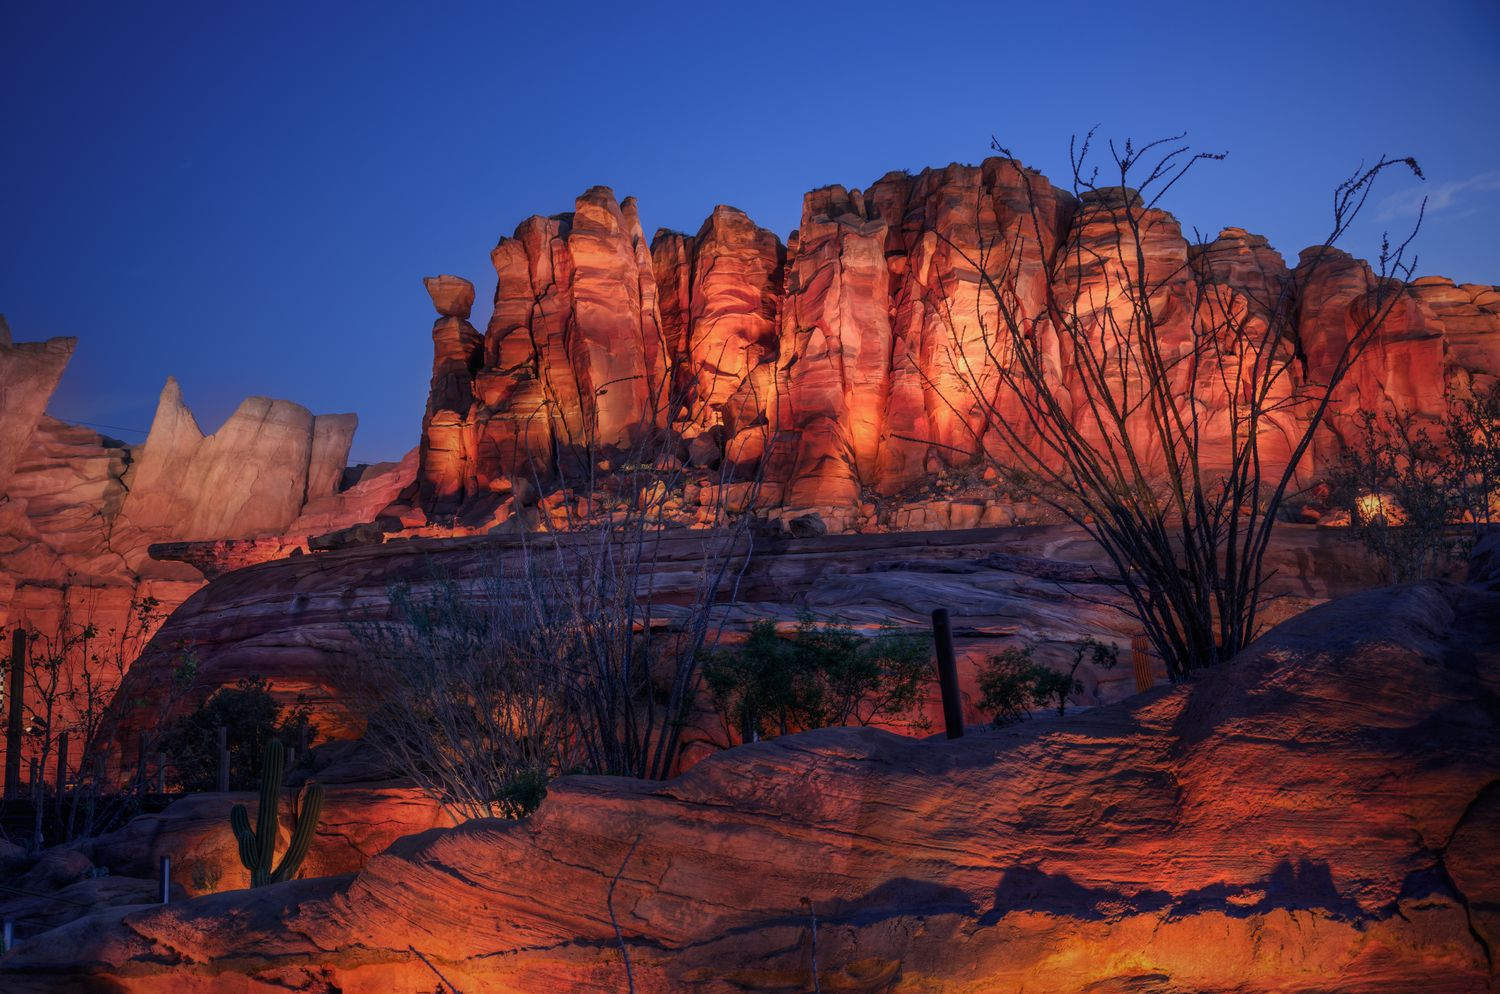 TWILIGHT AT ORNAMENT VALLEY by Michaela Hansen